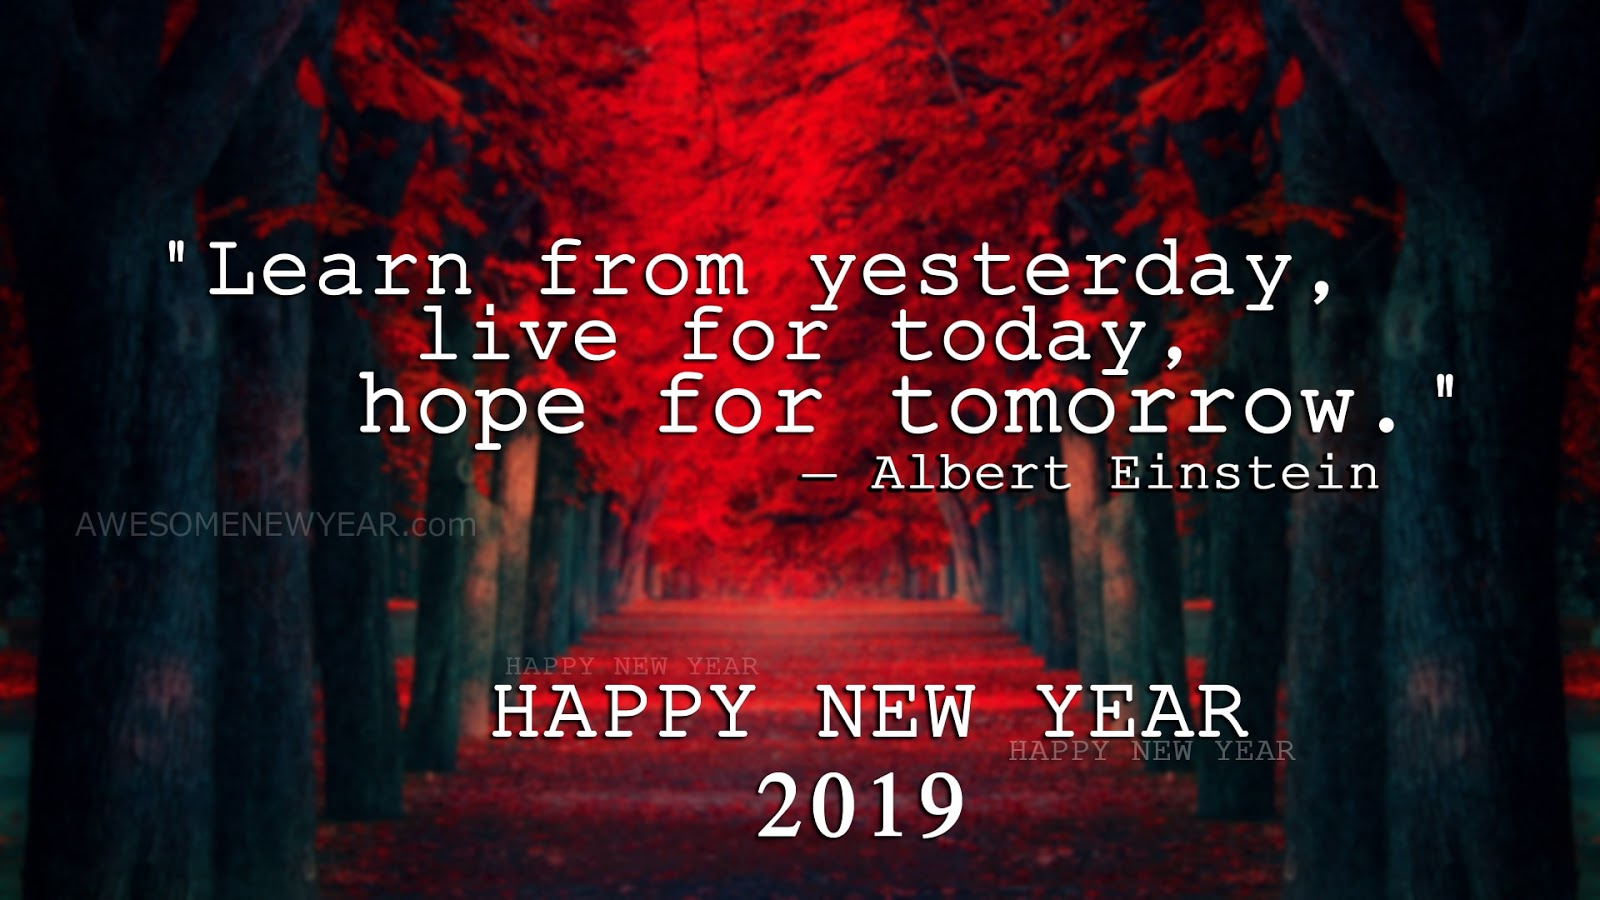 40 Awesome Happy New Year Images with quotes for 2019